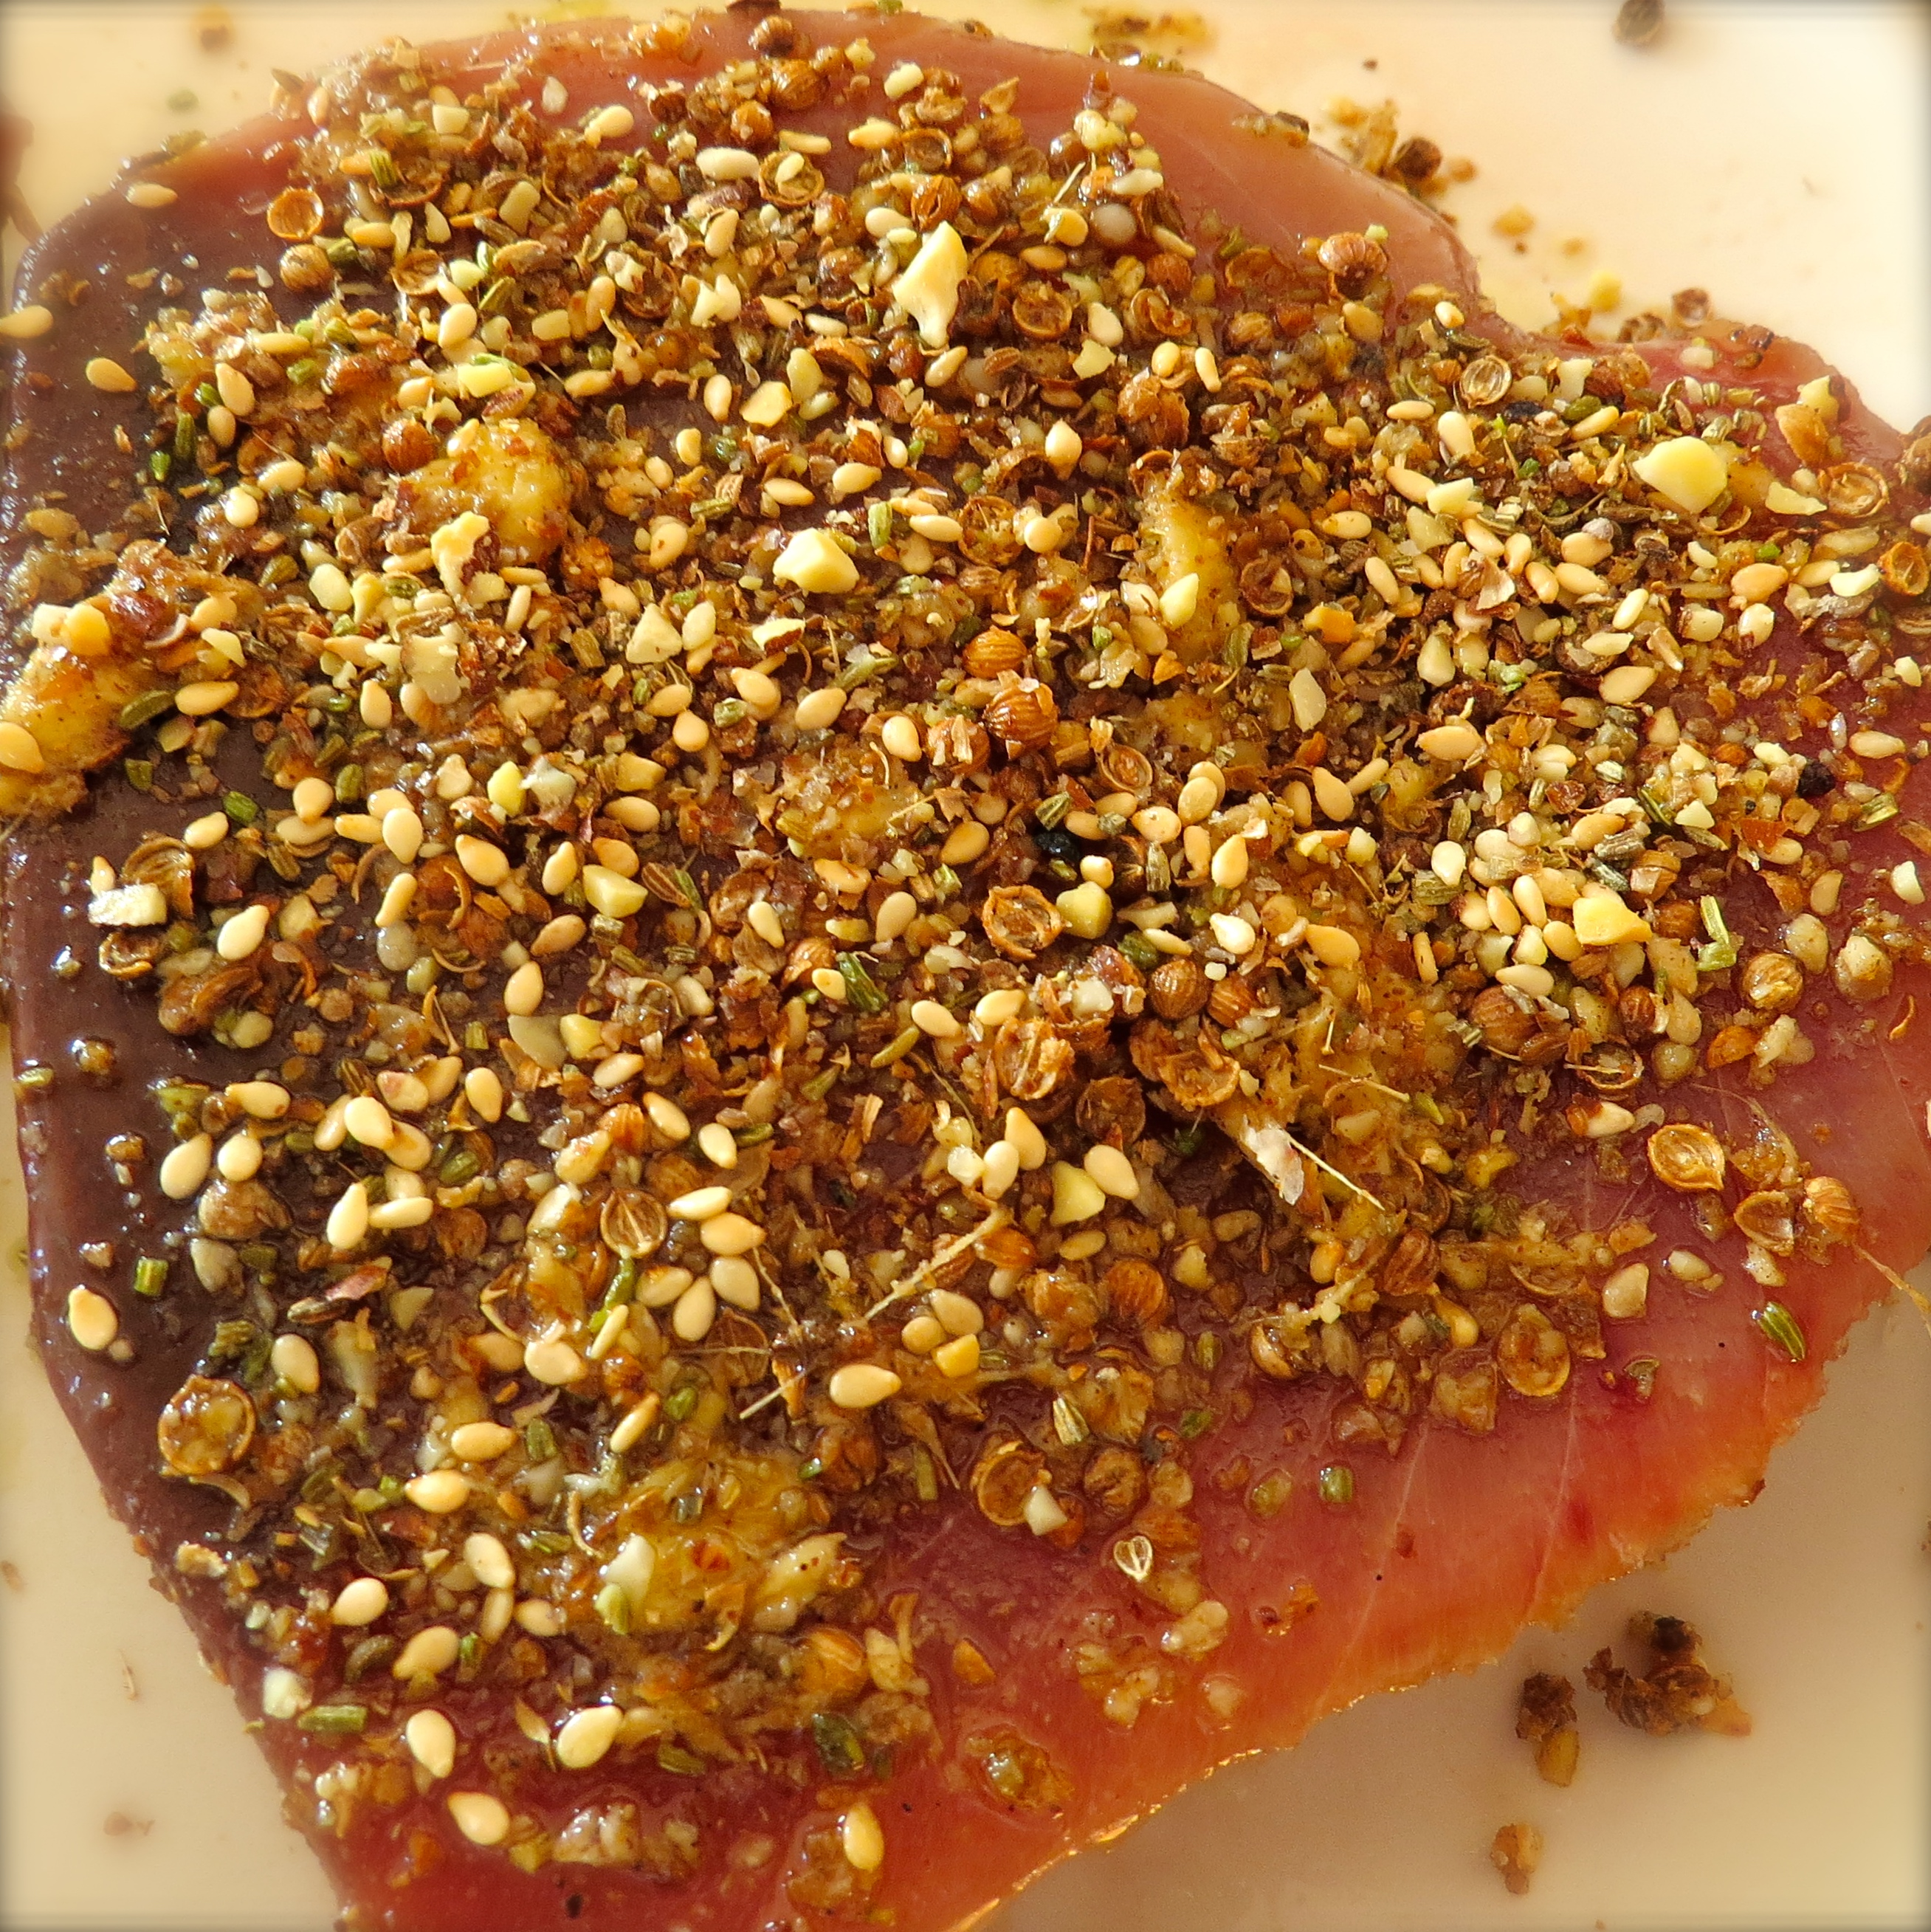 Here's the tuna just after I poured the spice mixture on both sides. After taking this picture, I lightly pressed the spices into the tuna. The olive oil provids the glue.